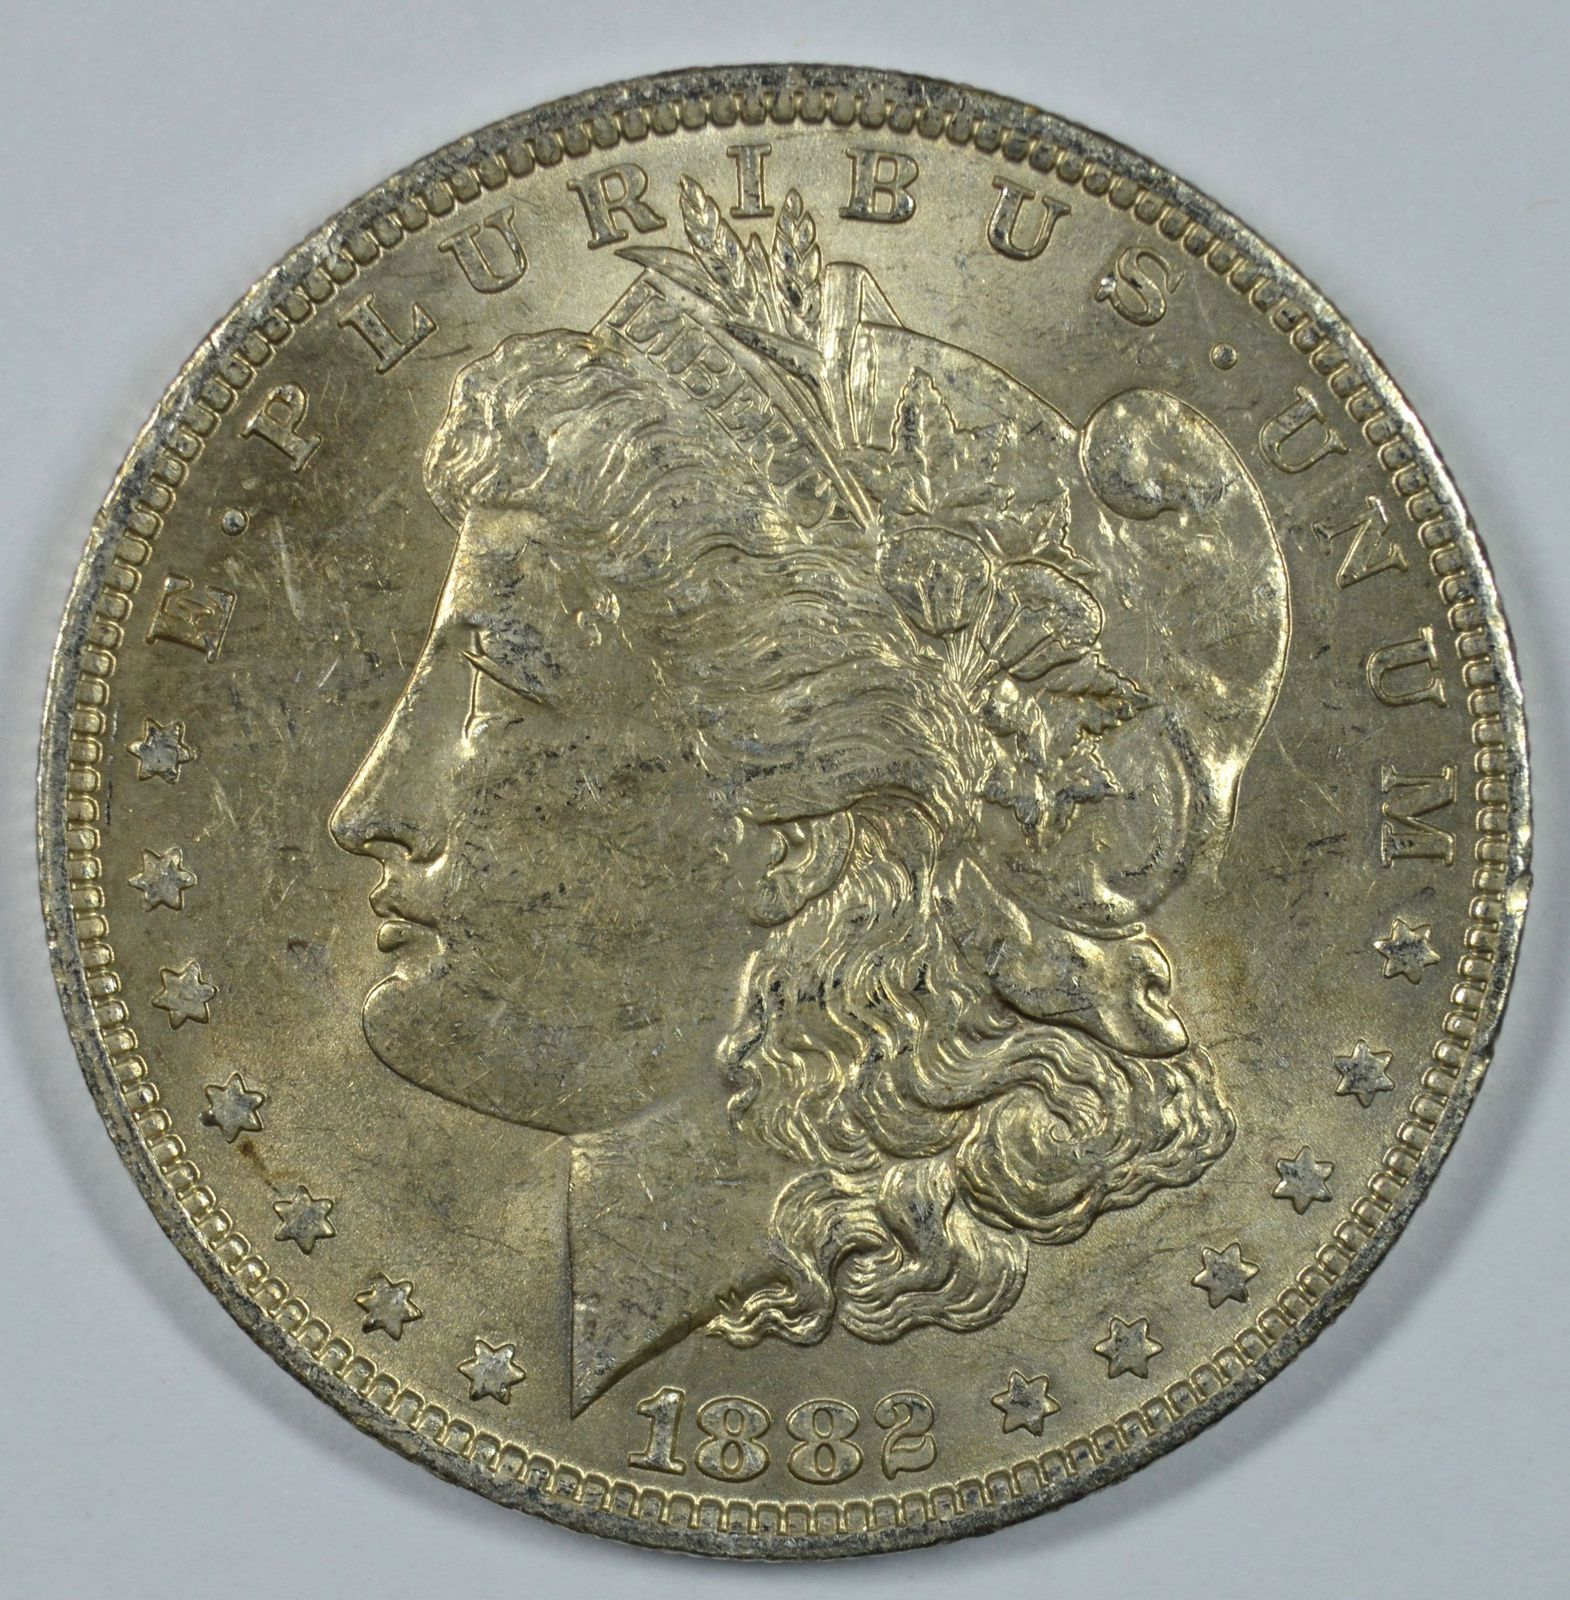 Primary image for 1882 O Morgan silver dollar AU details